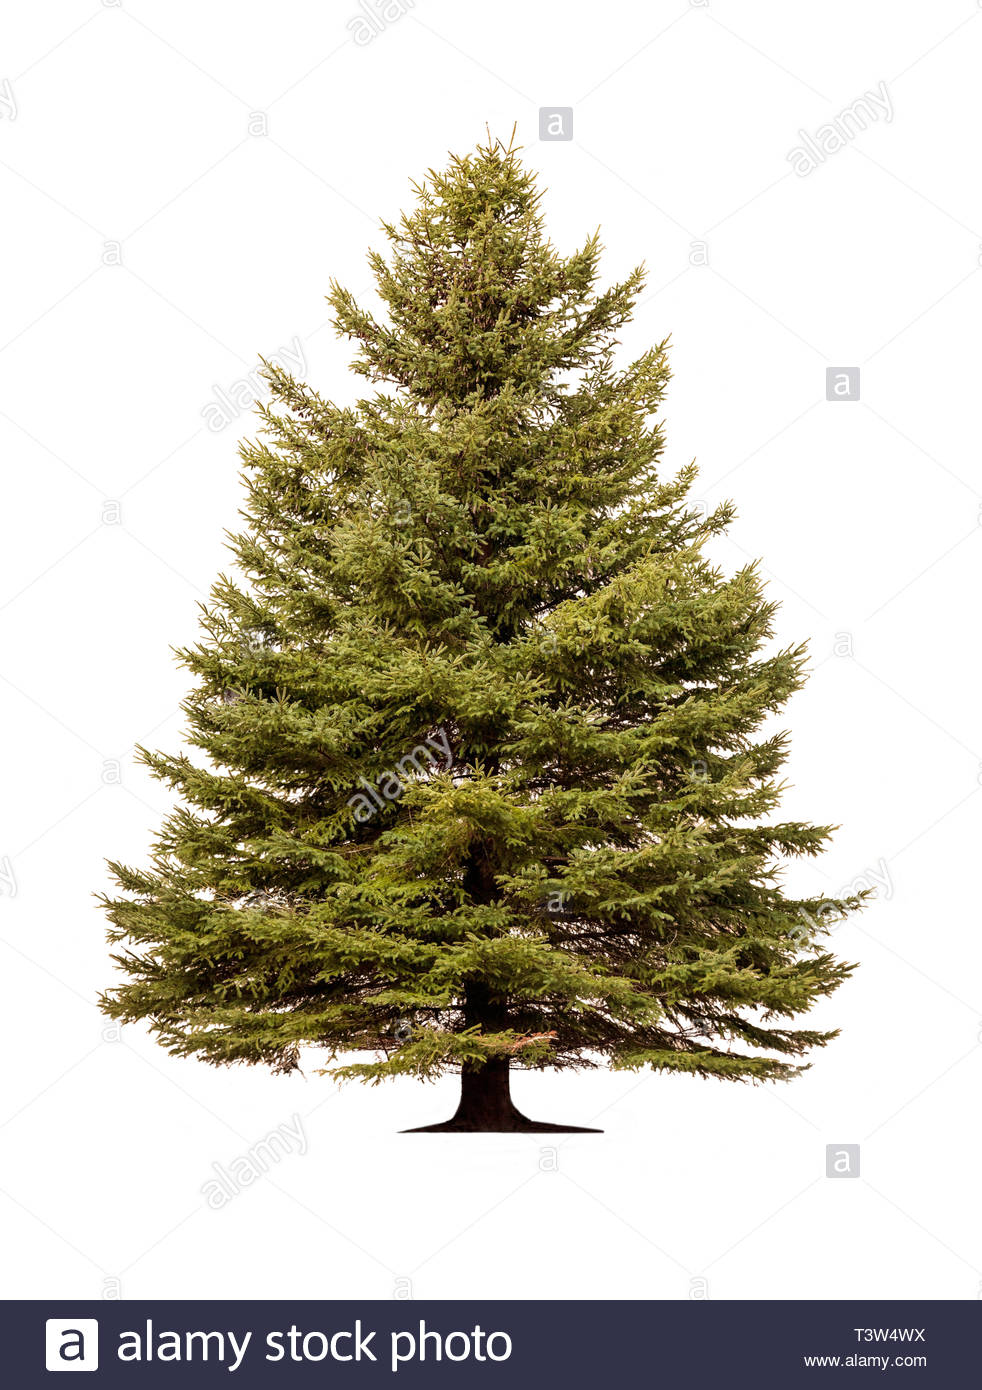 Norway spruce Picea abies European spruce tree on white background - Stock Image